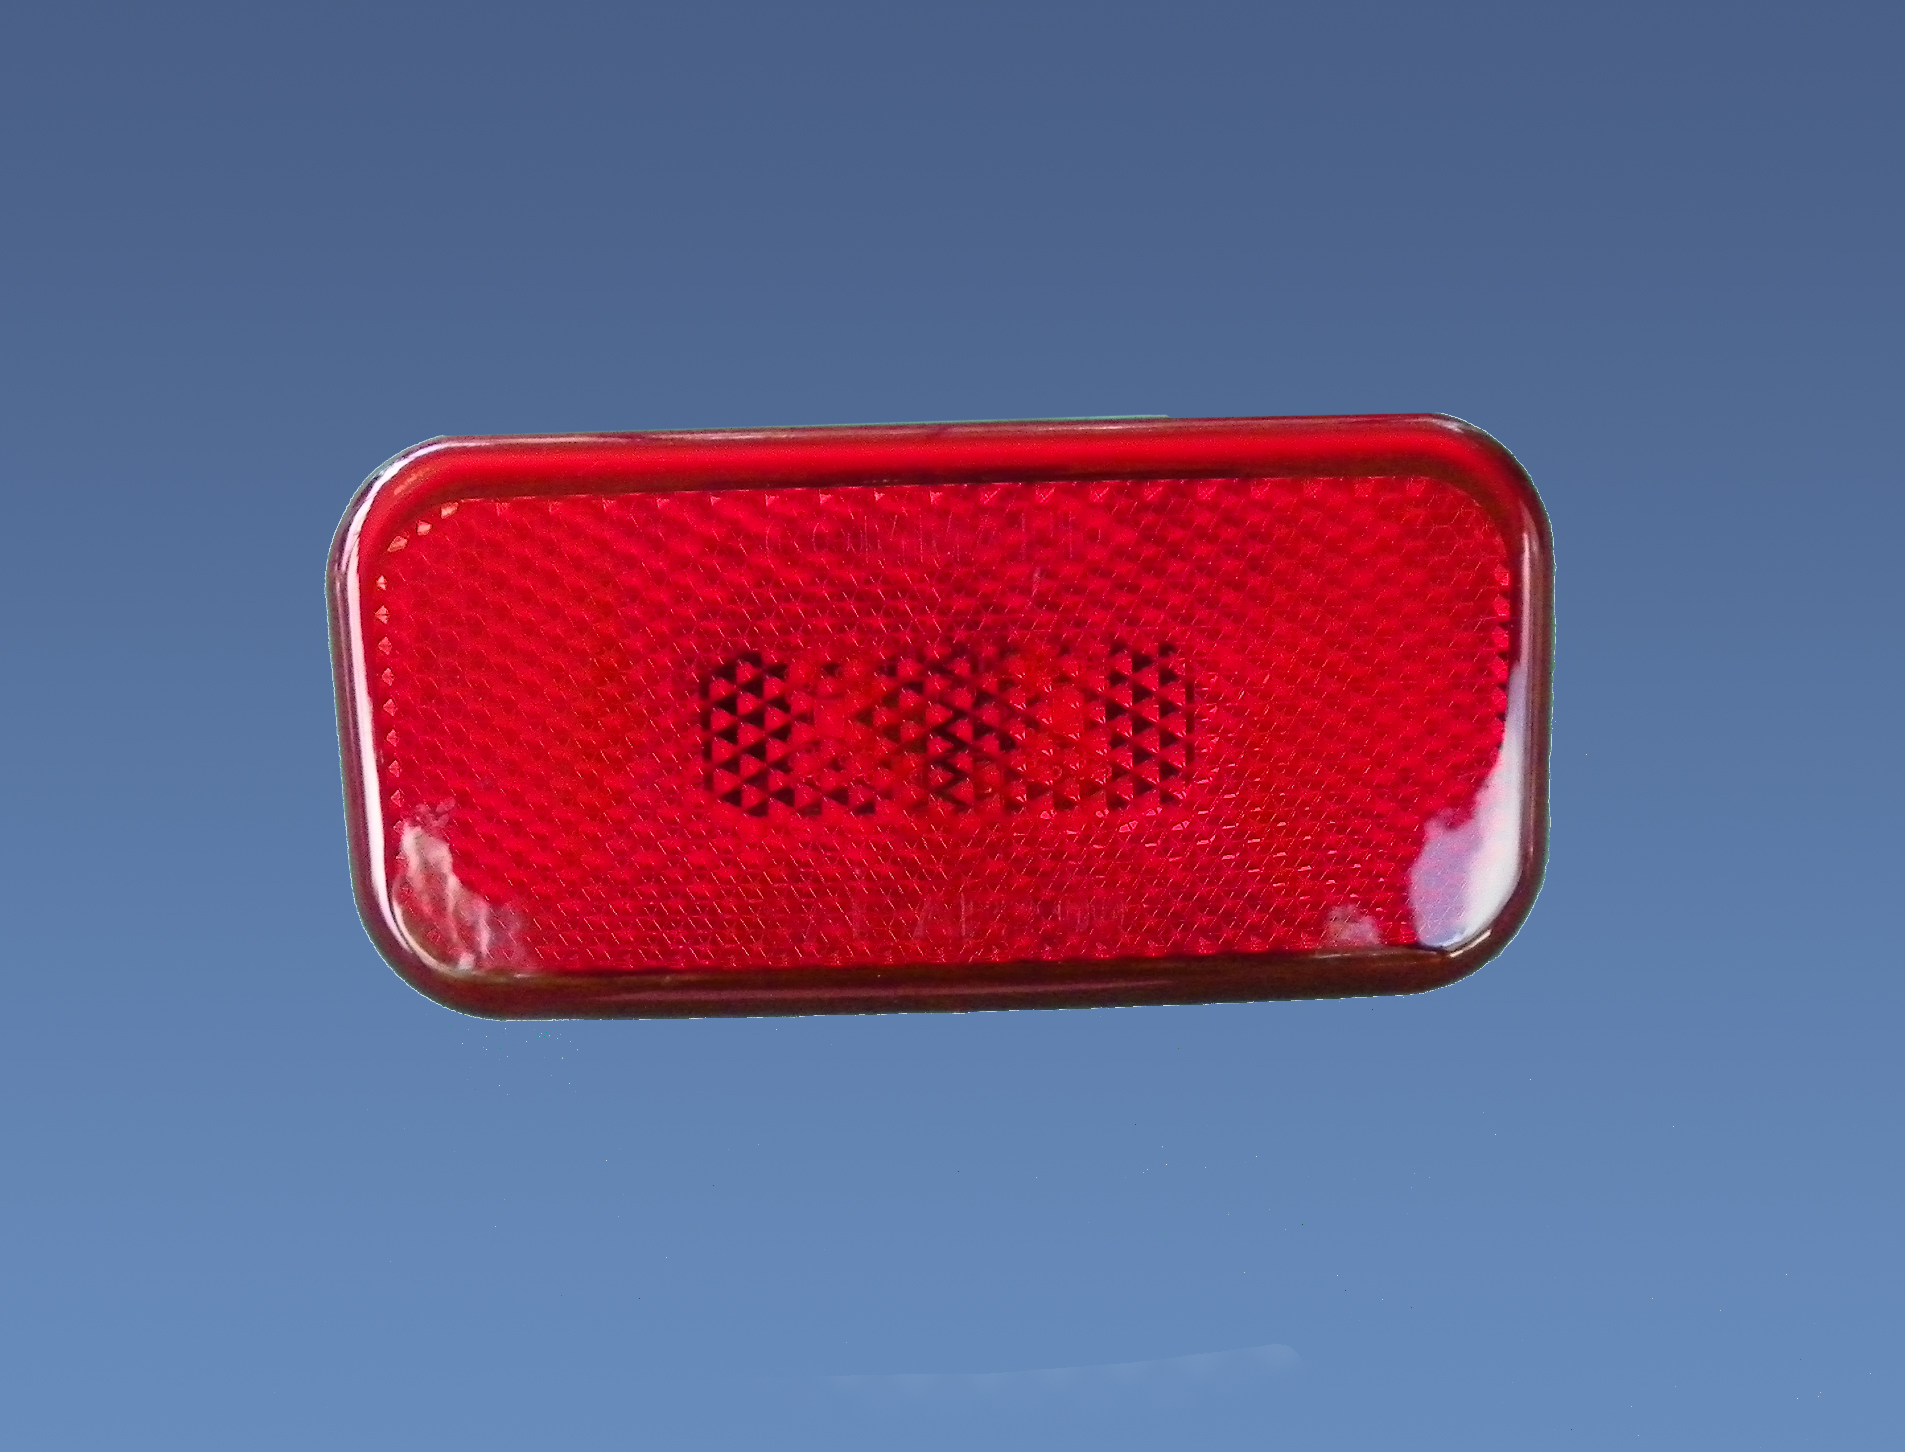 003-58LB Fasteners Unlimited Side Marker Light- LED Clearance Light